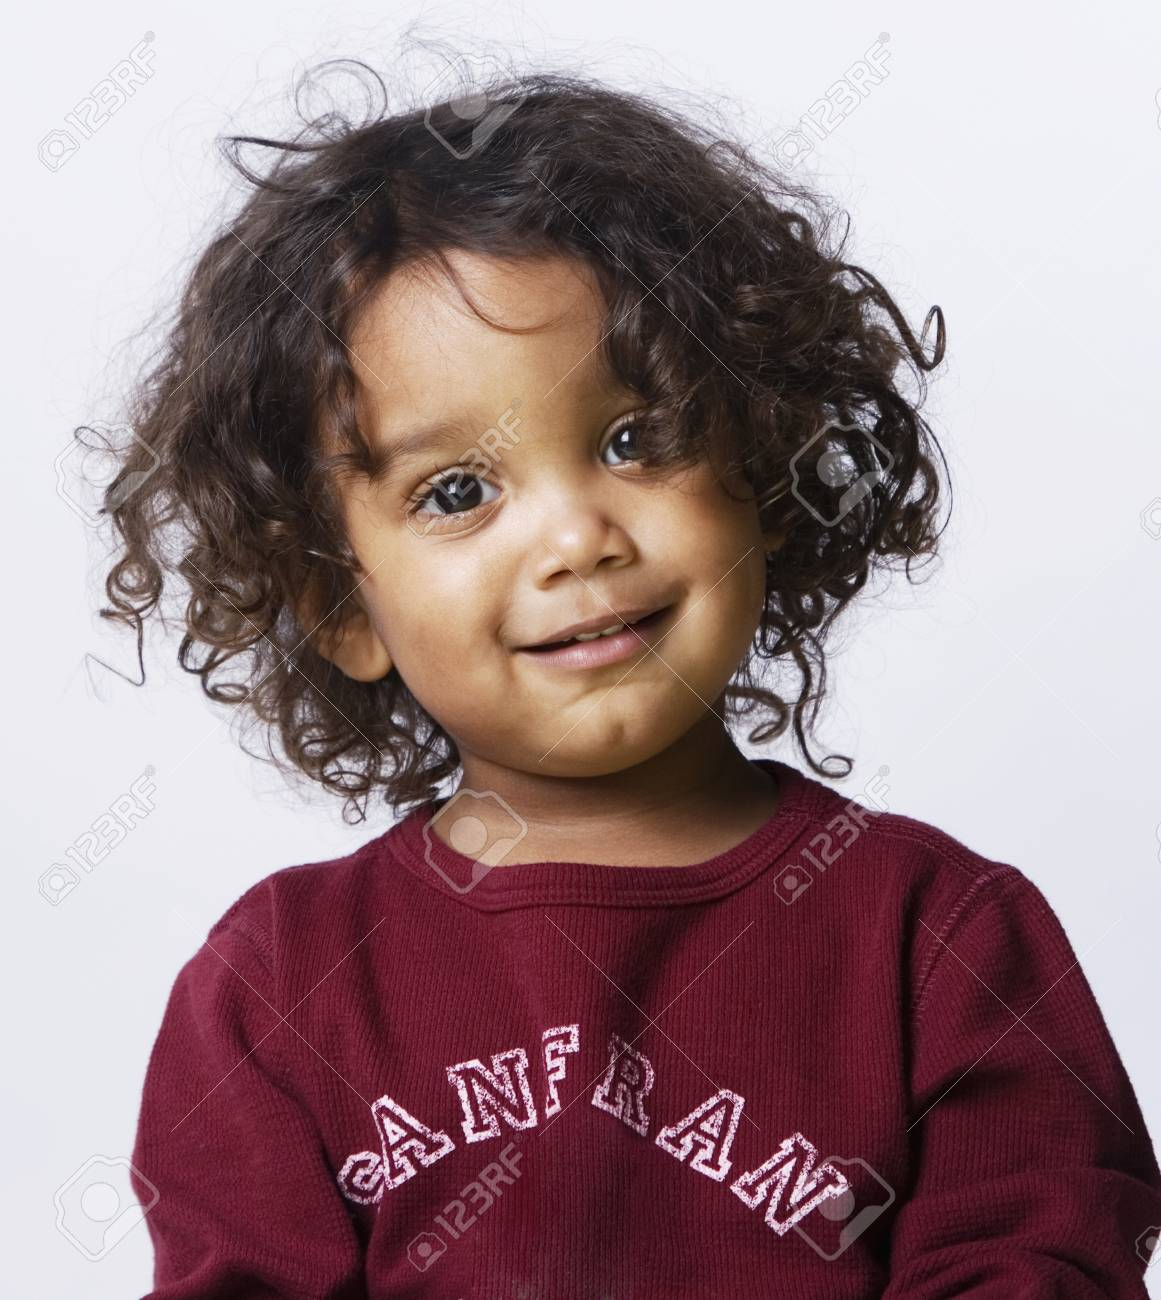 mixed race boy with curly hair